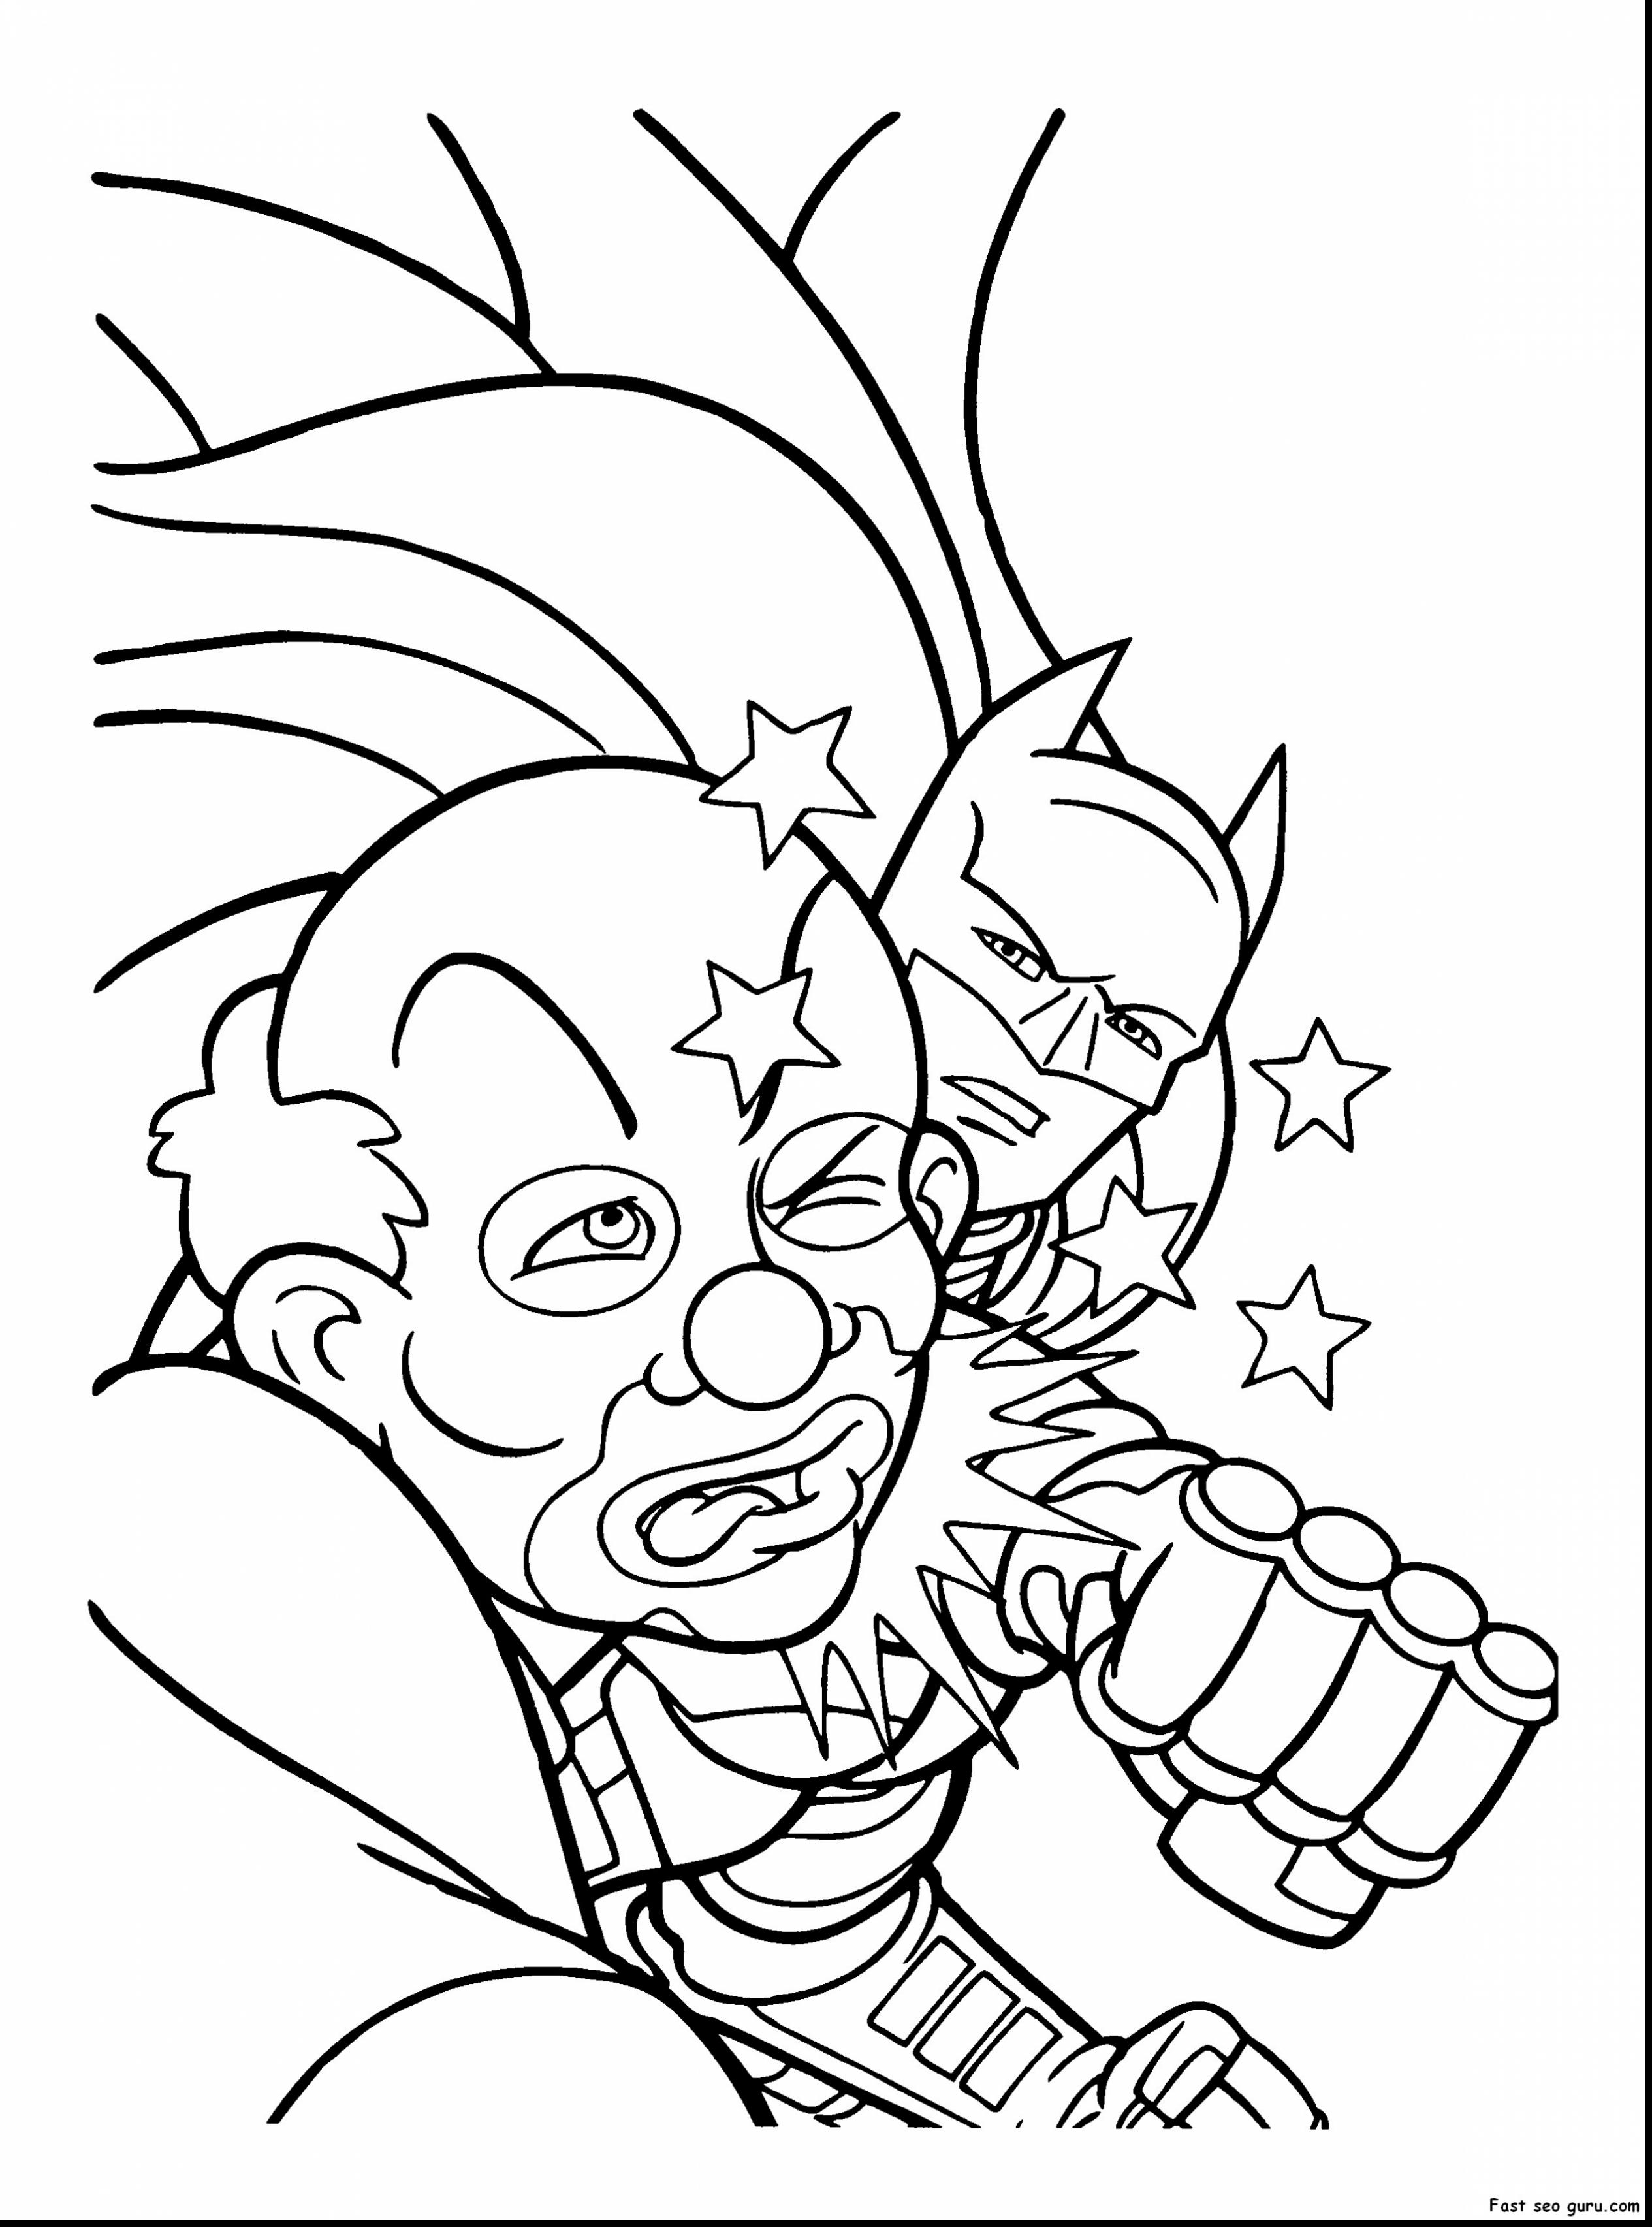 2530x3410 Joker Coloring Pages Printable Printable Coloring Page Gallery